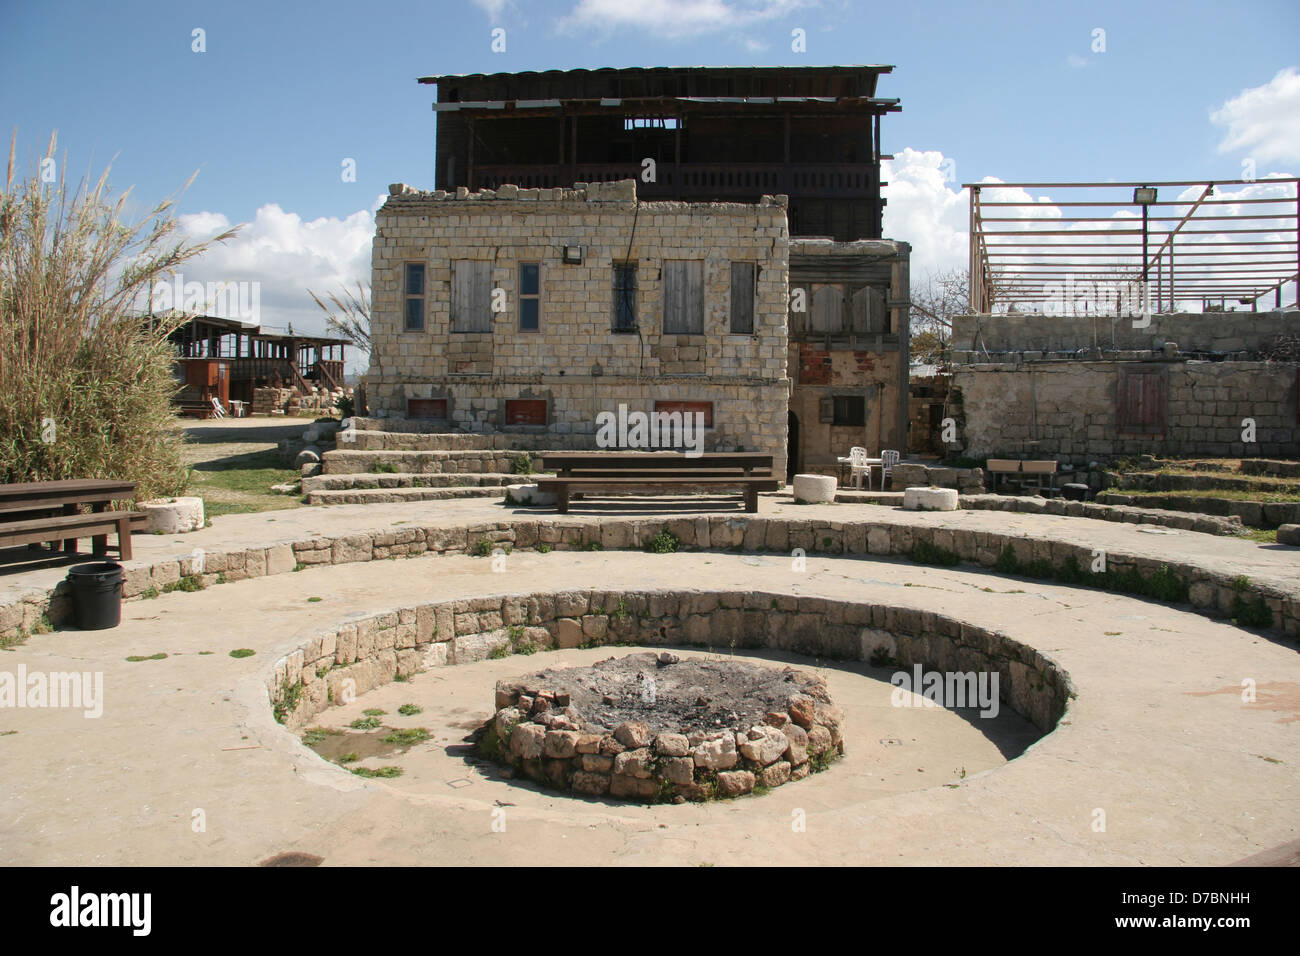 the courtyard of achzibland, western galilee - Stock Image